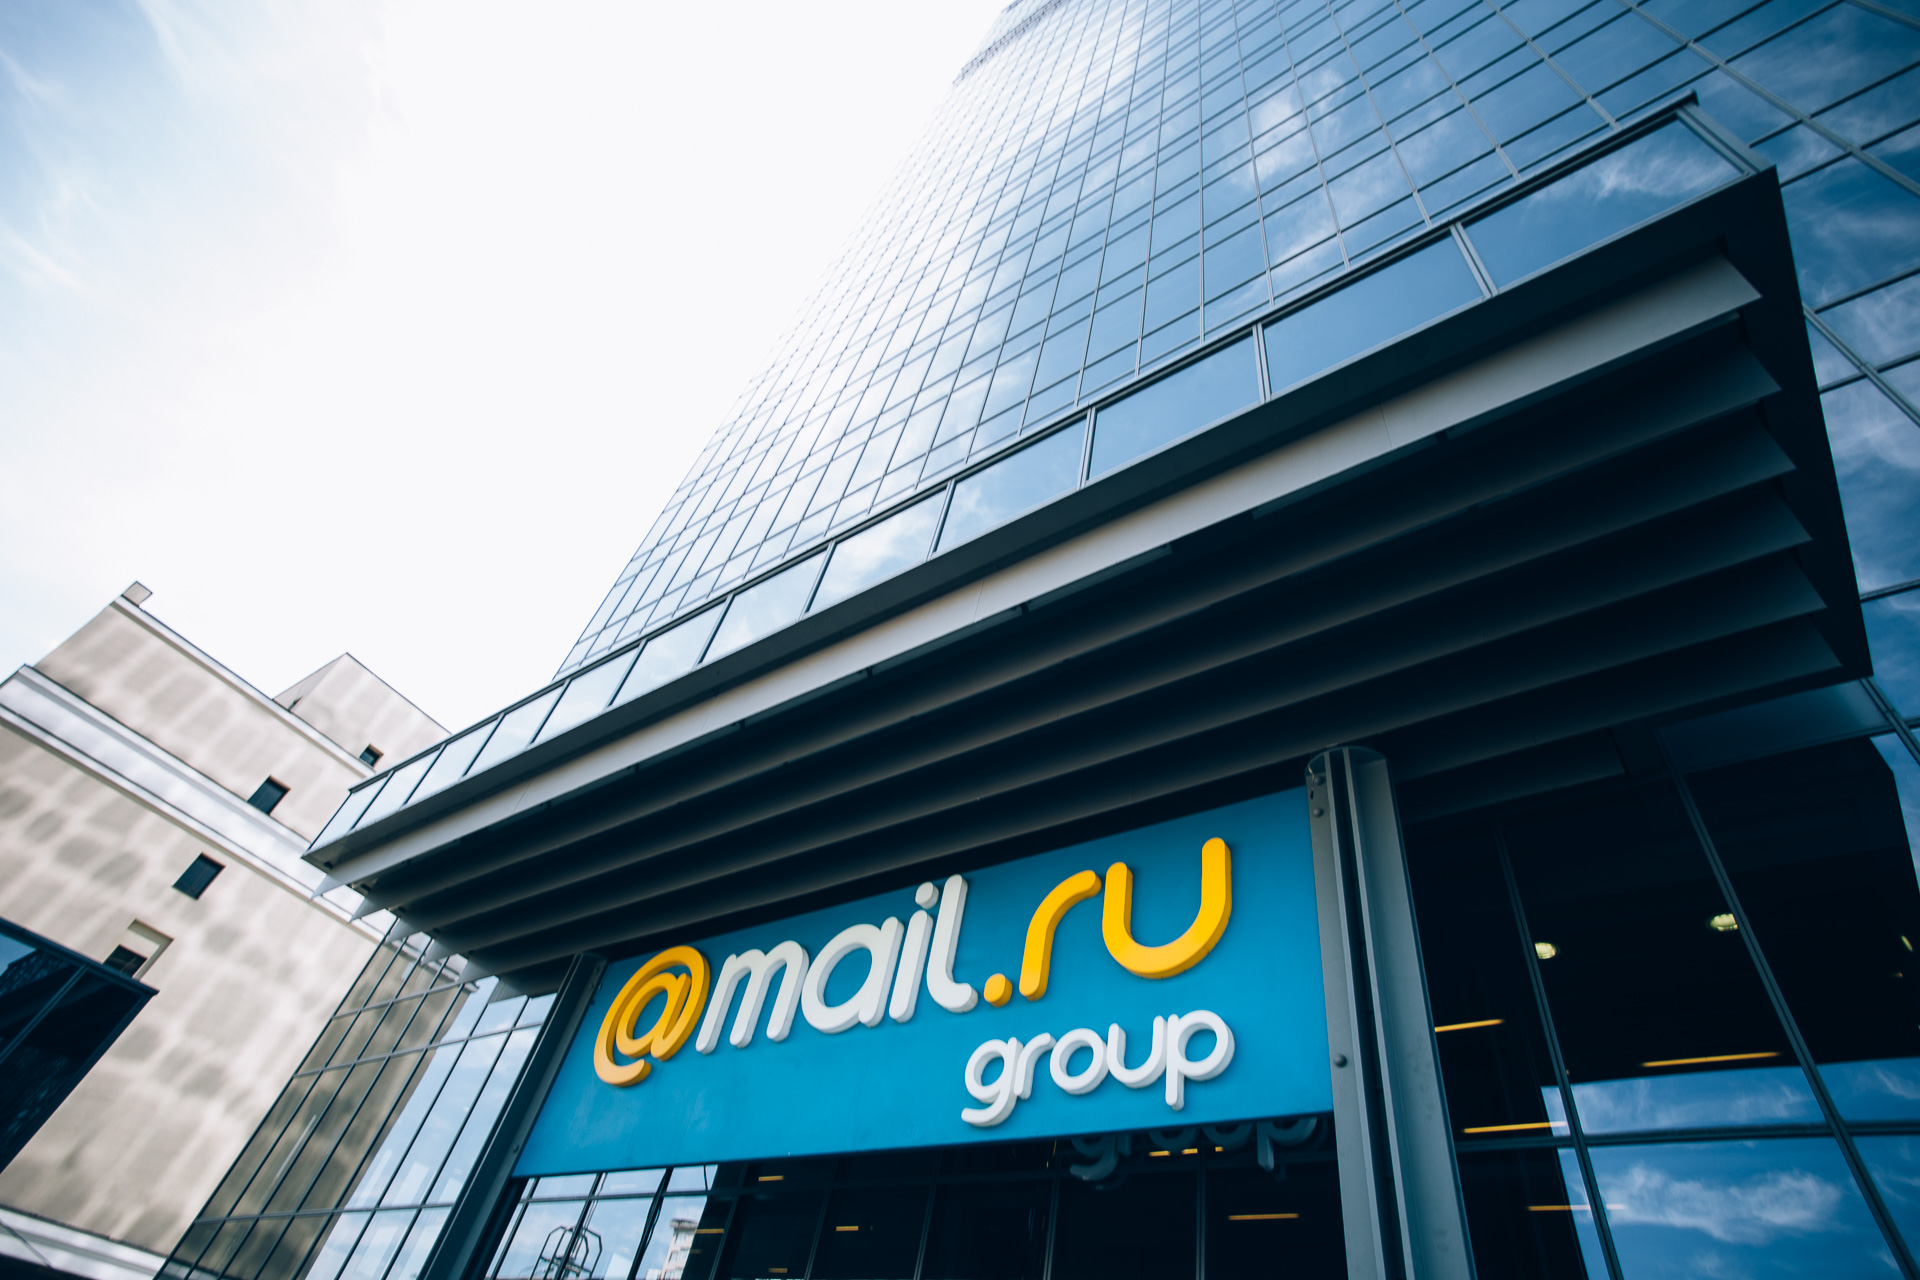 Ru/customer/account - Ru Group Limited Unaudited Ifrs Results For Q2 2017 Mail Ru Group